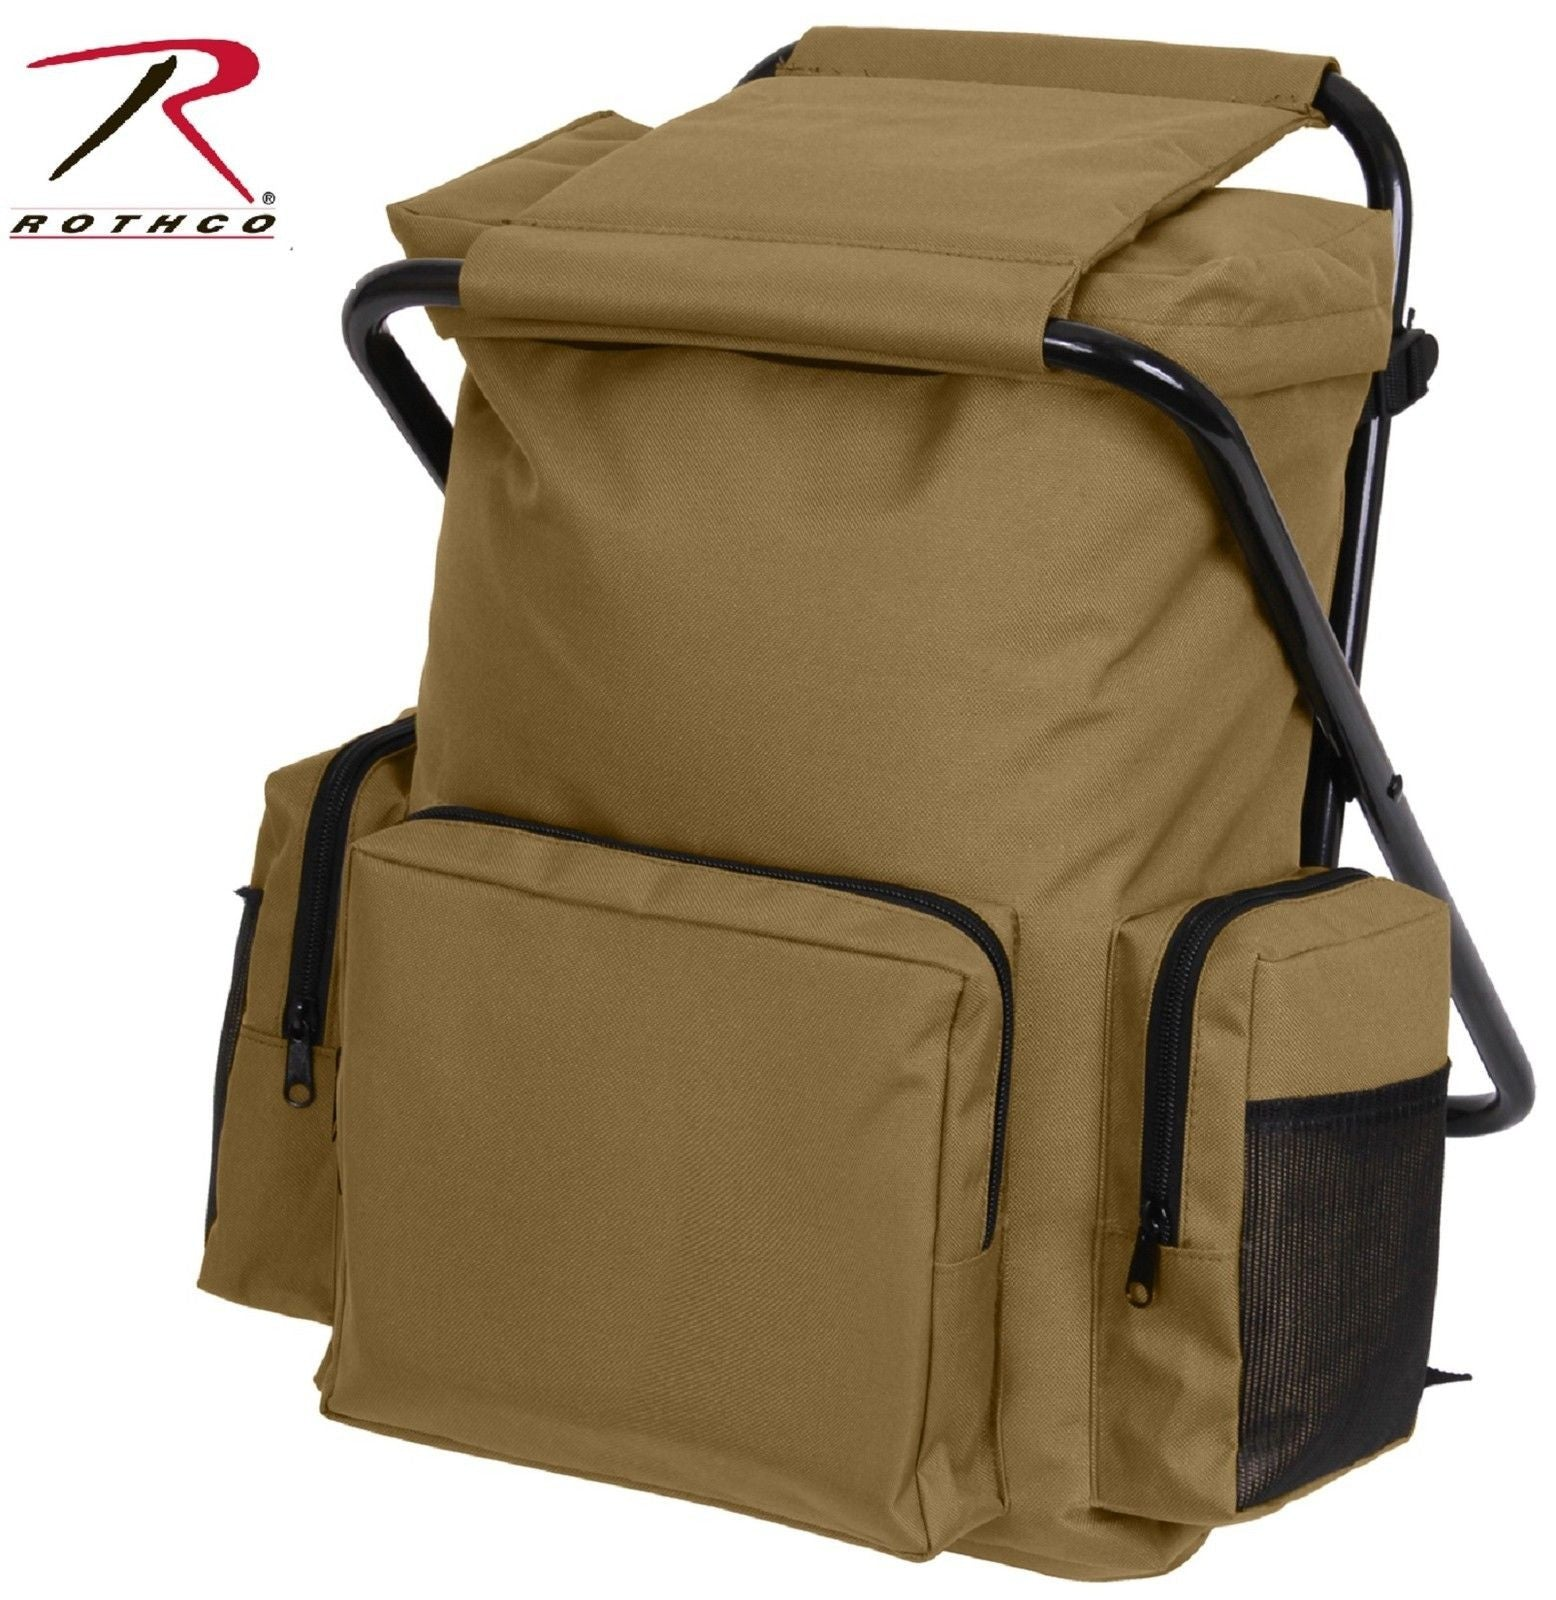 Coyote Brown Backpack Stool bo Pack Rothco Hunting & Outdoor